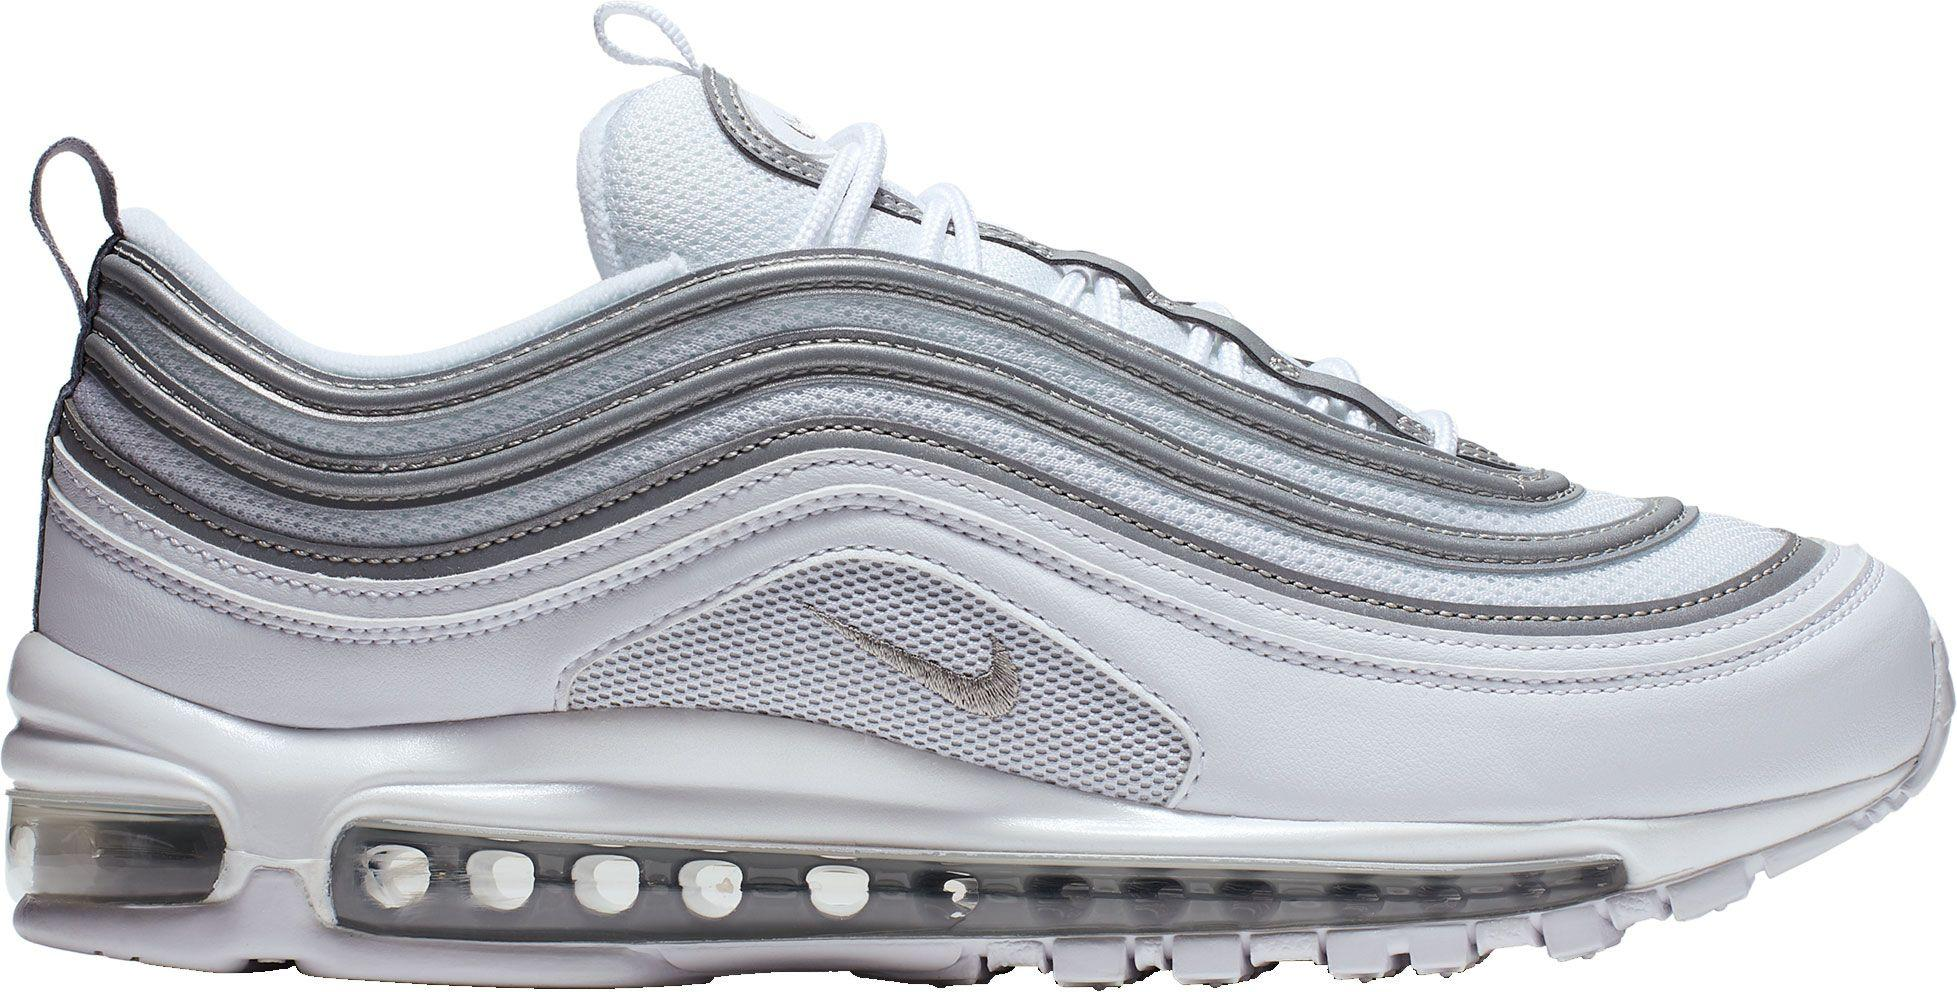 f23cfa1d48 Nike - Multicolor Air Max 97 Shoes for Men - Lyst